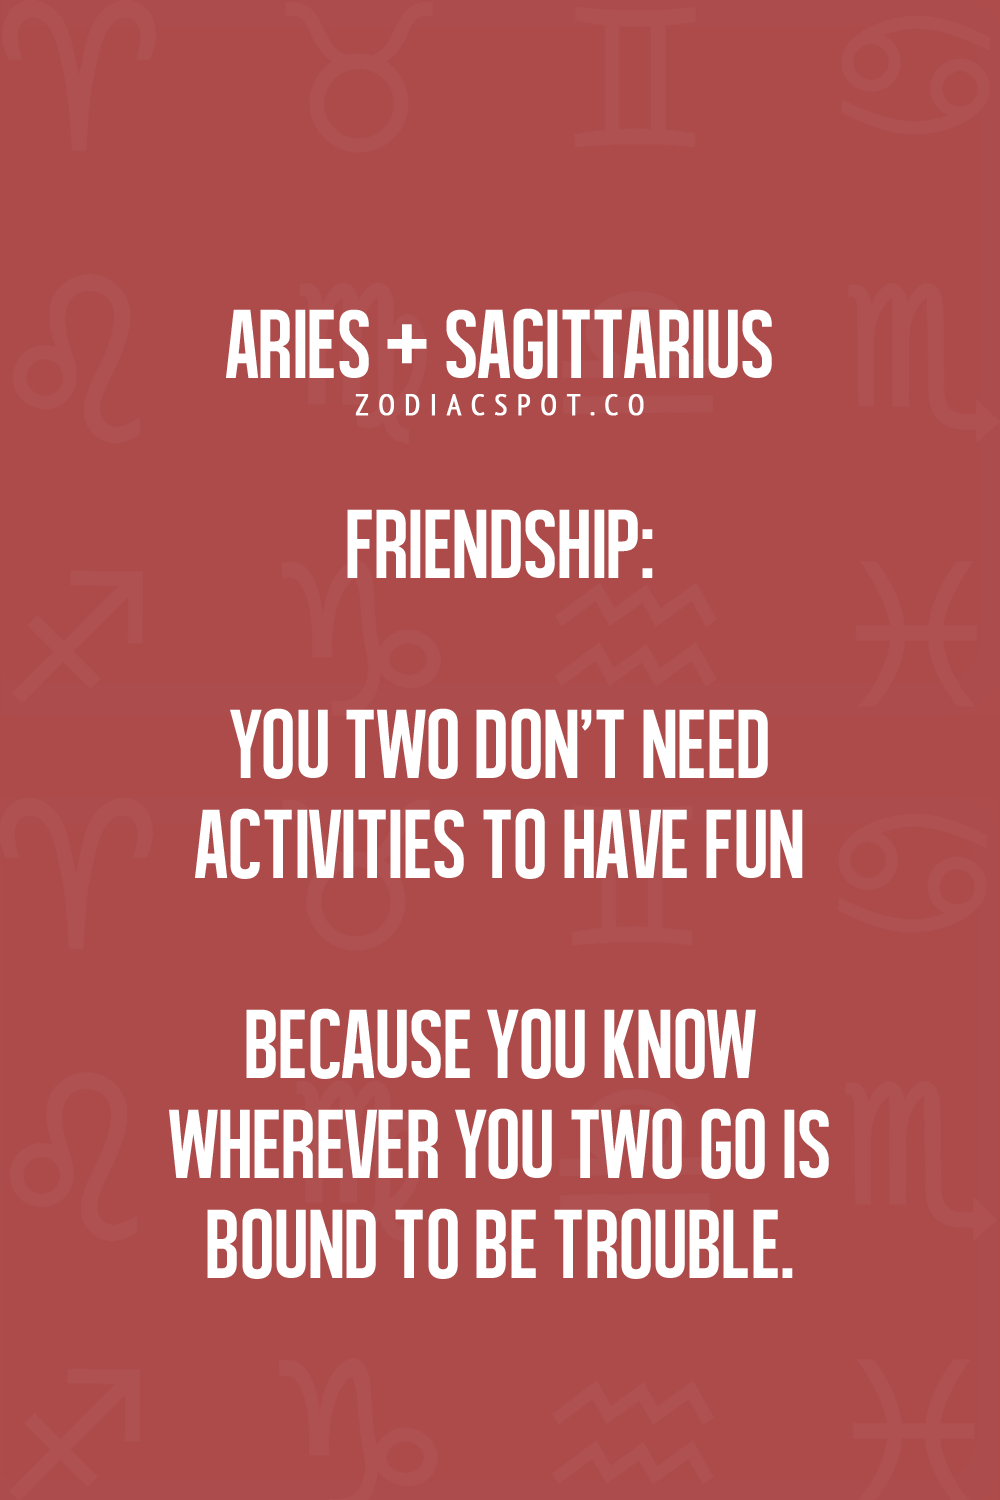 More Zodiac Compatibility here! | Astrology | Aries